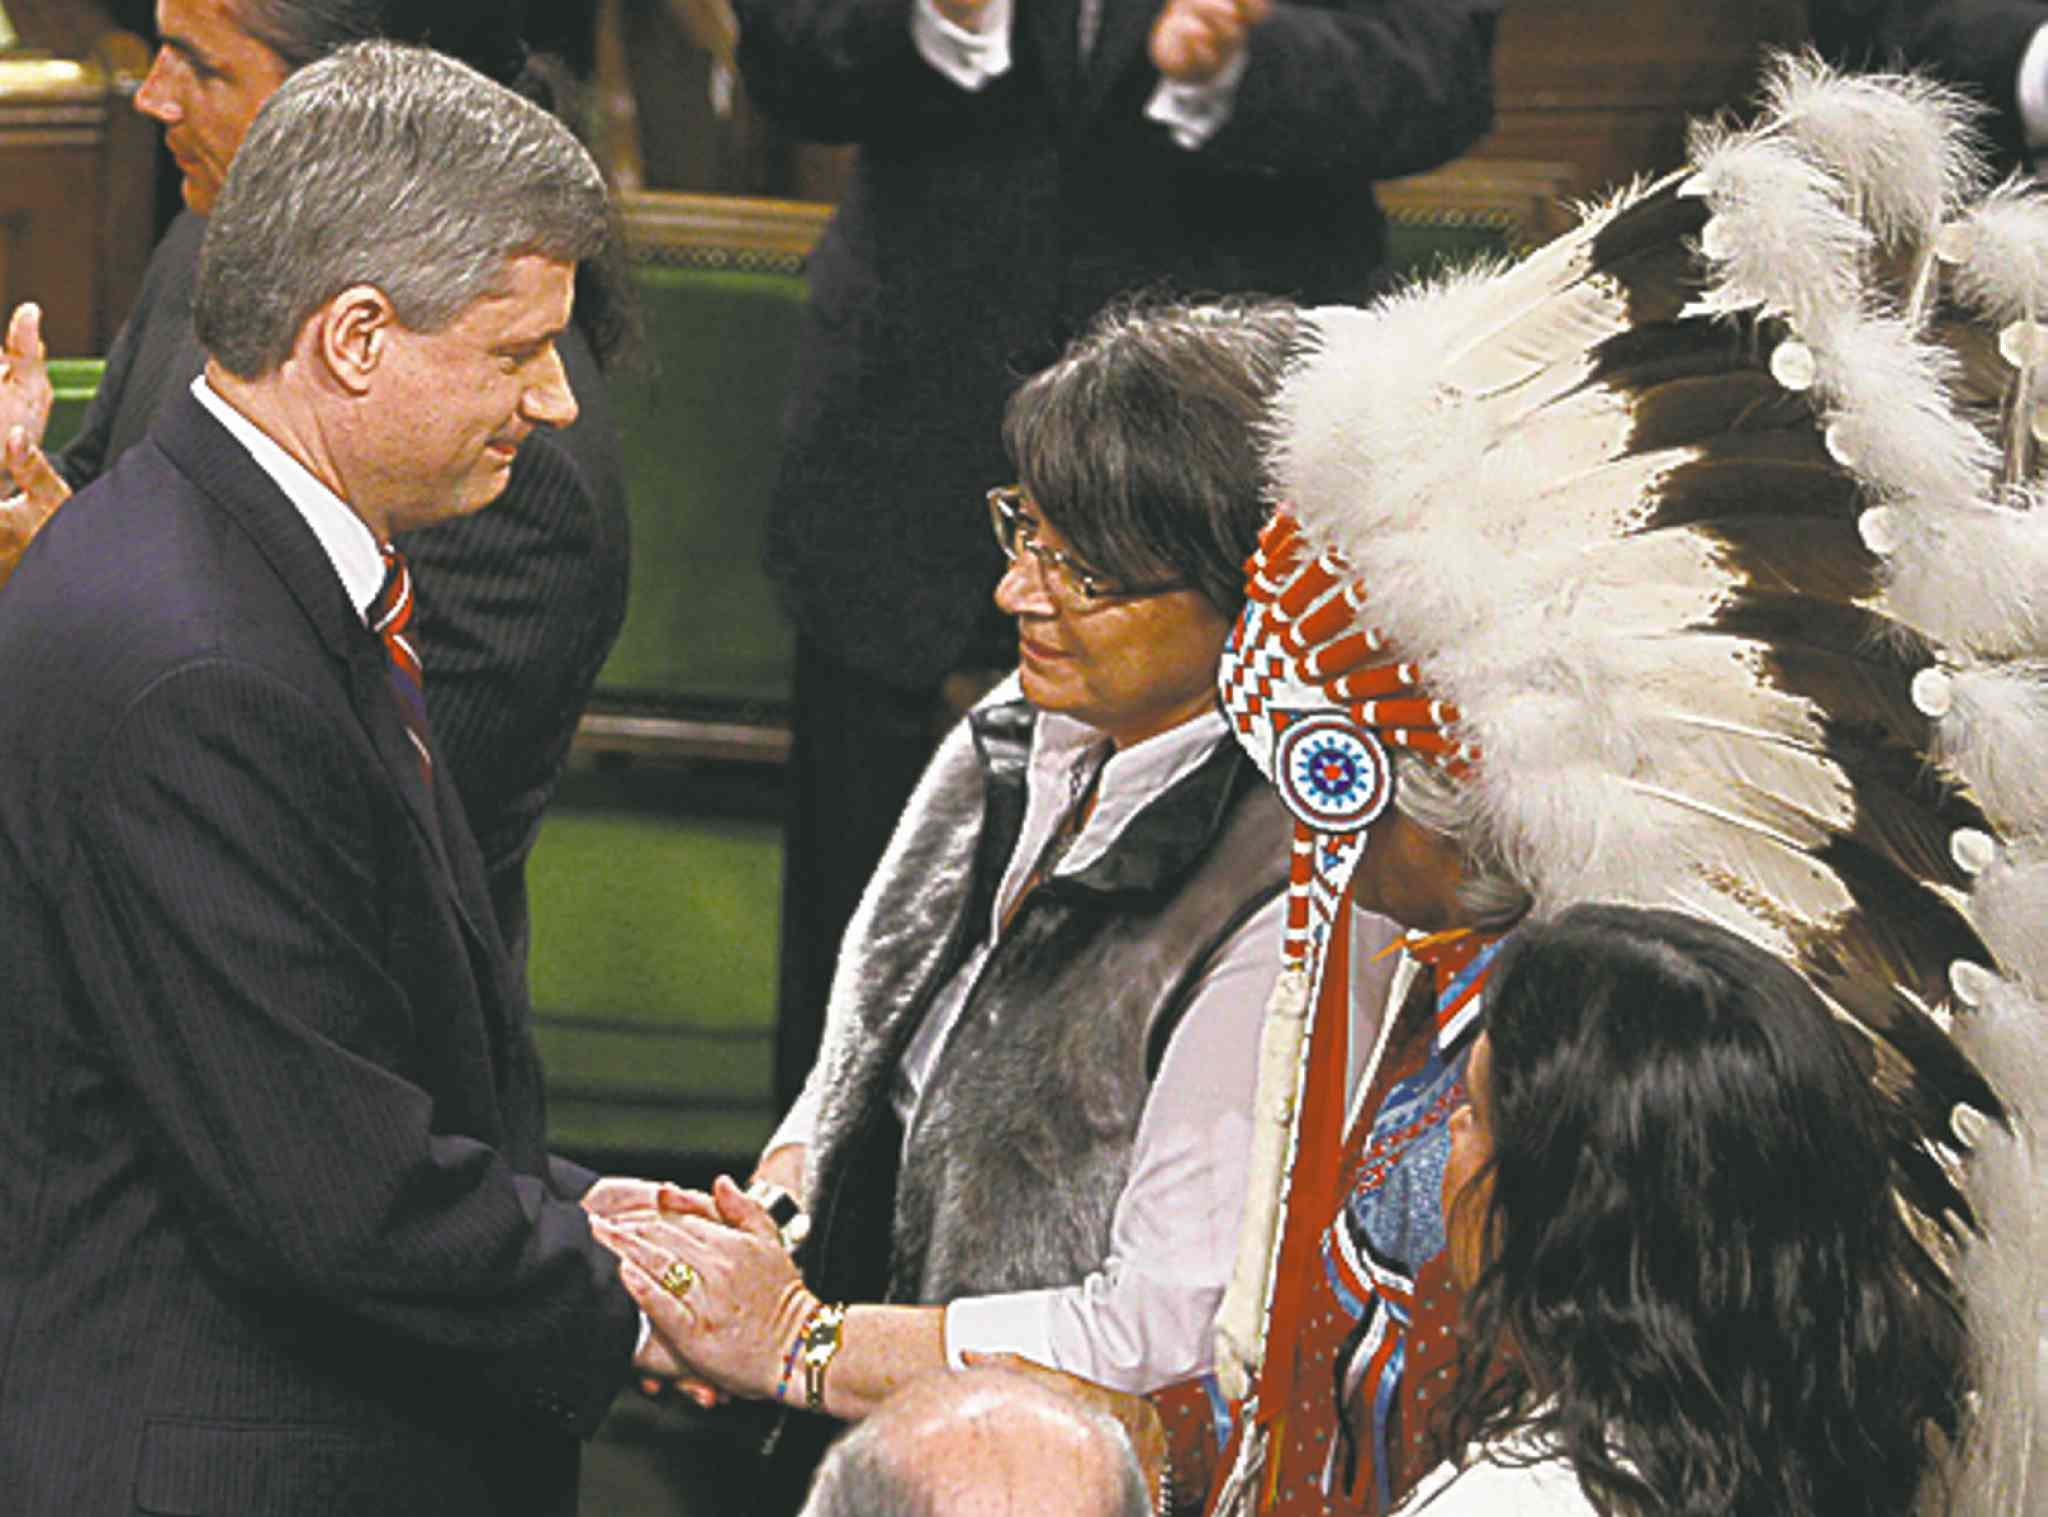 FRED CHARTRAND / THE ASSOCIATED PRESS ARCHIVESInuit Tapiriit Kanatami President Mary Simon shakes hands with Prime Minister Stephen Harper, as Assembly of First Nations Chief Phil Fontaine (headdress) watches, after the government�s official apology for more than a century of abuse and cultural loss involving Indian residential schools.